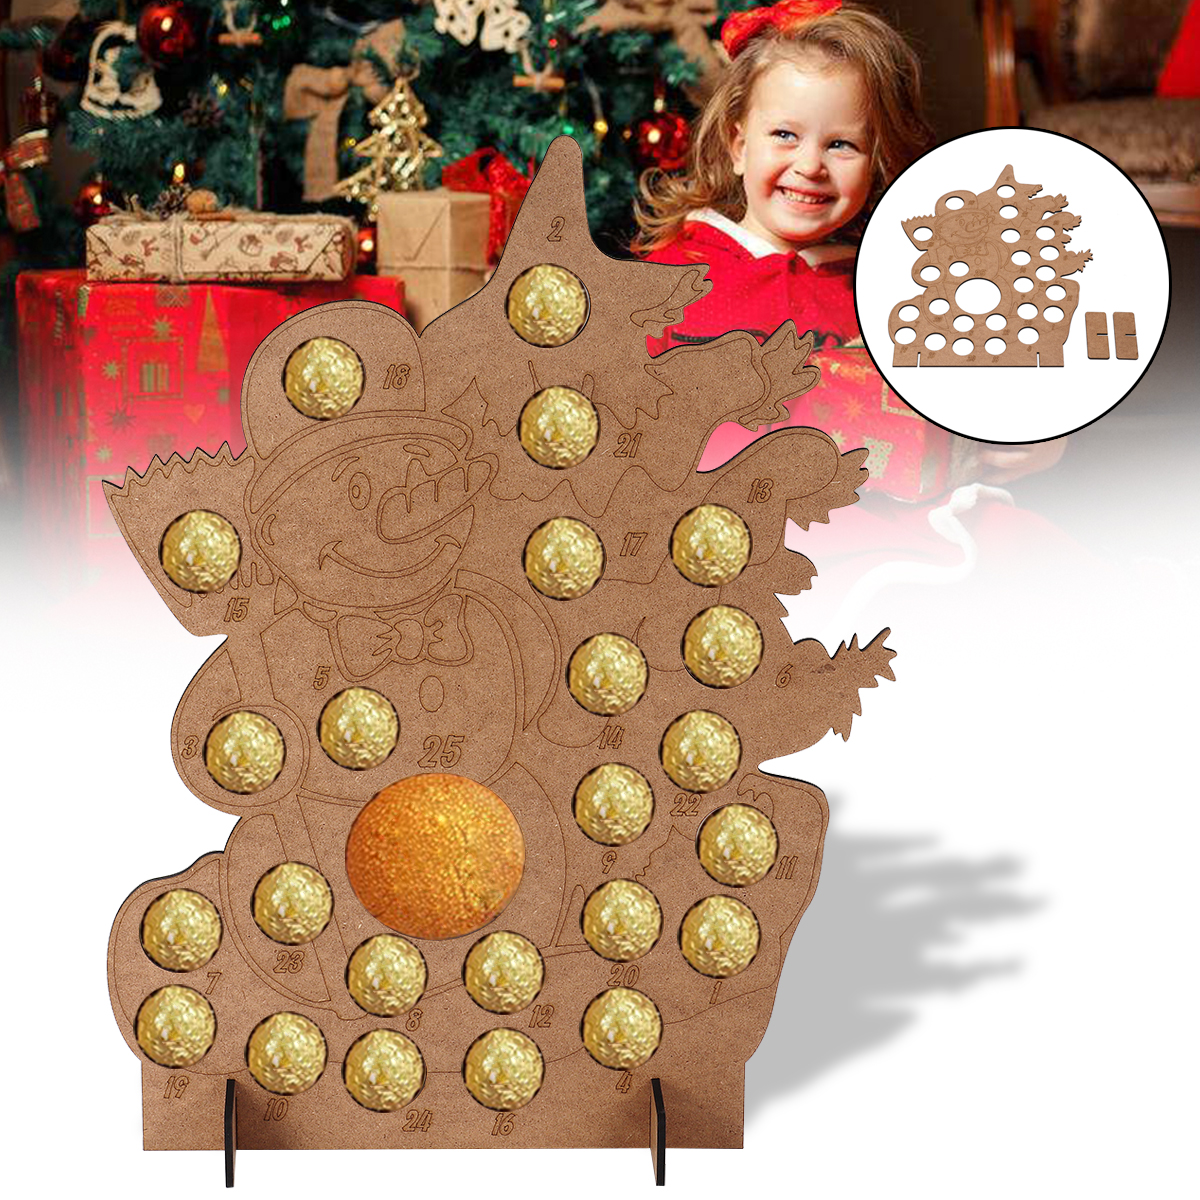 Christmas Tree Box Stand.Us 10 17 50 Off Christmas Advent Calendar Wooden Christmas Tree Home Decorations Wedding Party Chocolates Stand Storage Box Gift Display In Advent